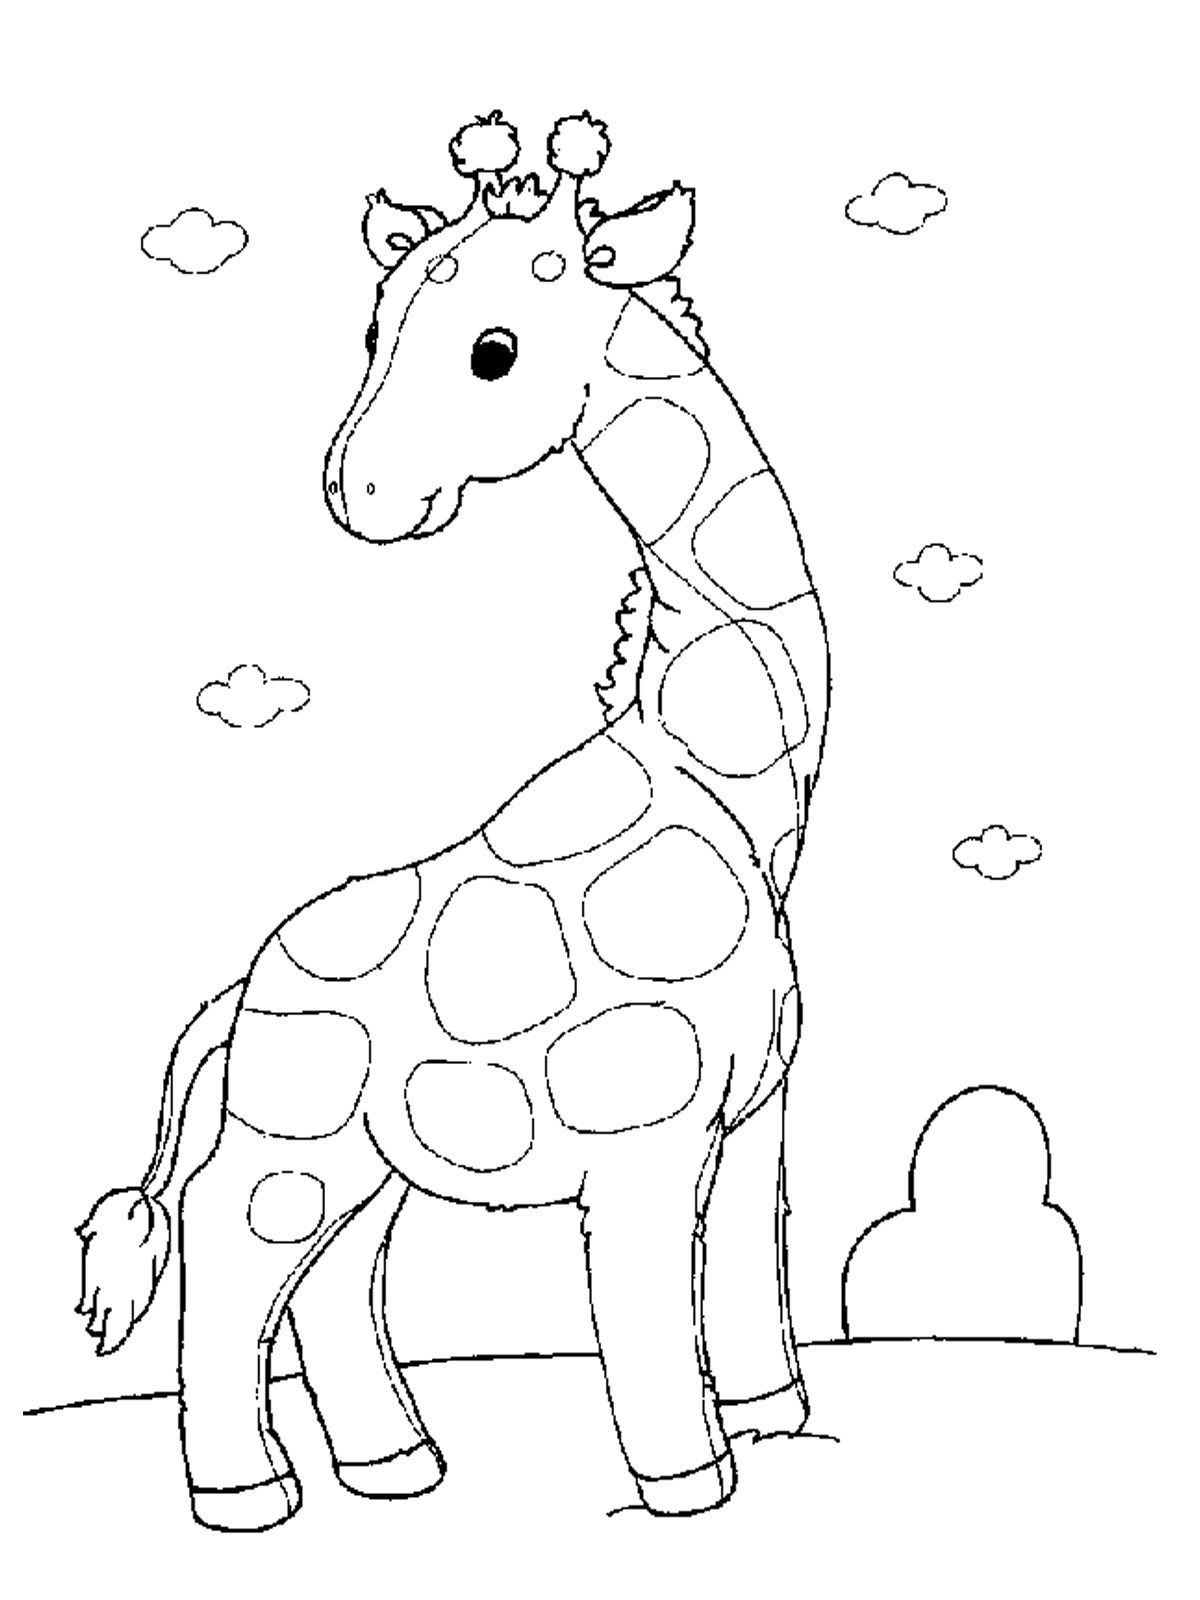 Printable Giraffe Coloring Book For Kids K5 Worksheets Giraffe Coloring Pages Giraffe Colors Puppy Coloring Pages [ 1600 x 1200 Pixel ]